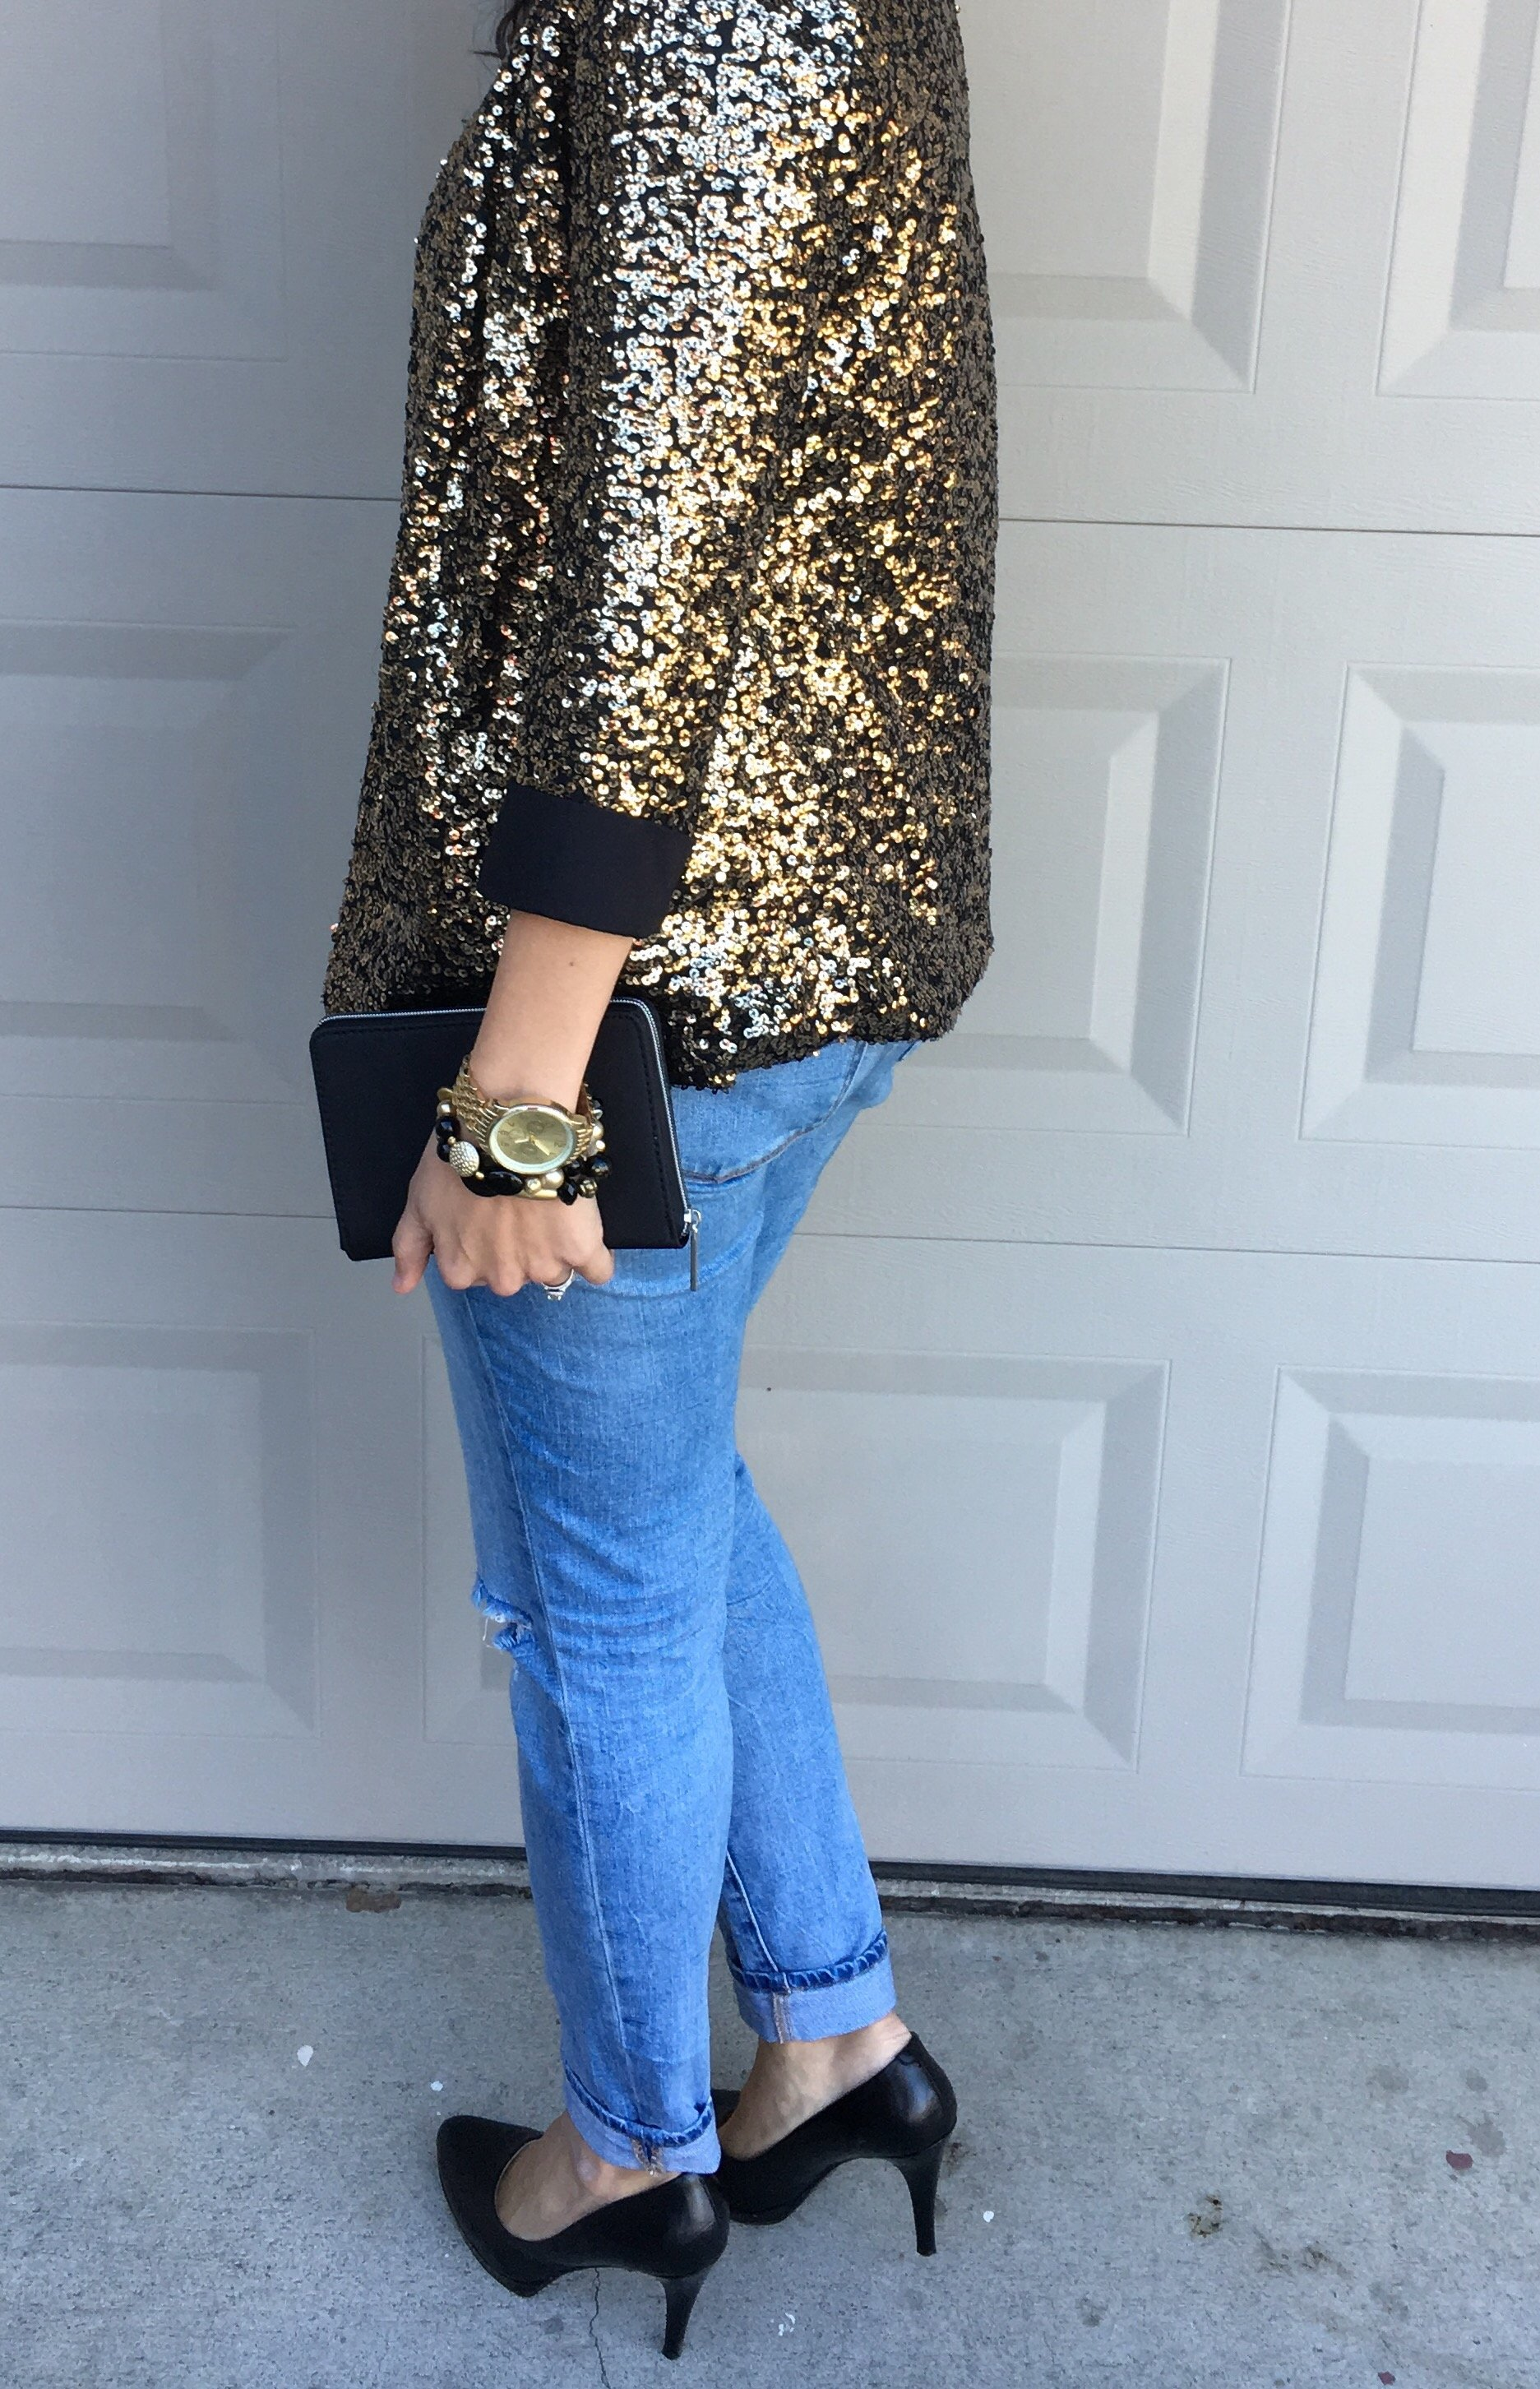 How to style a sequin blazer | winter style | fall and winter fashion | holiday style | holiday outfit ideas | cool weather